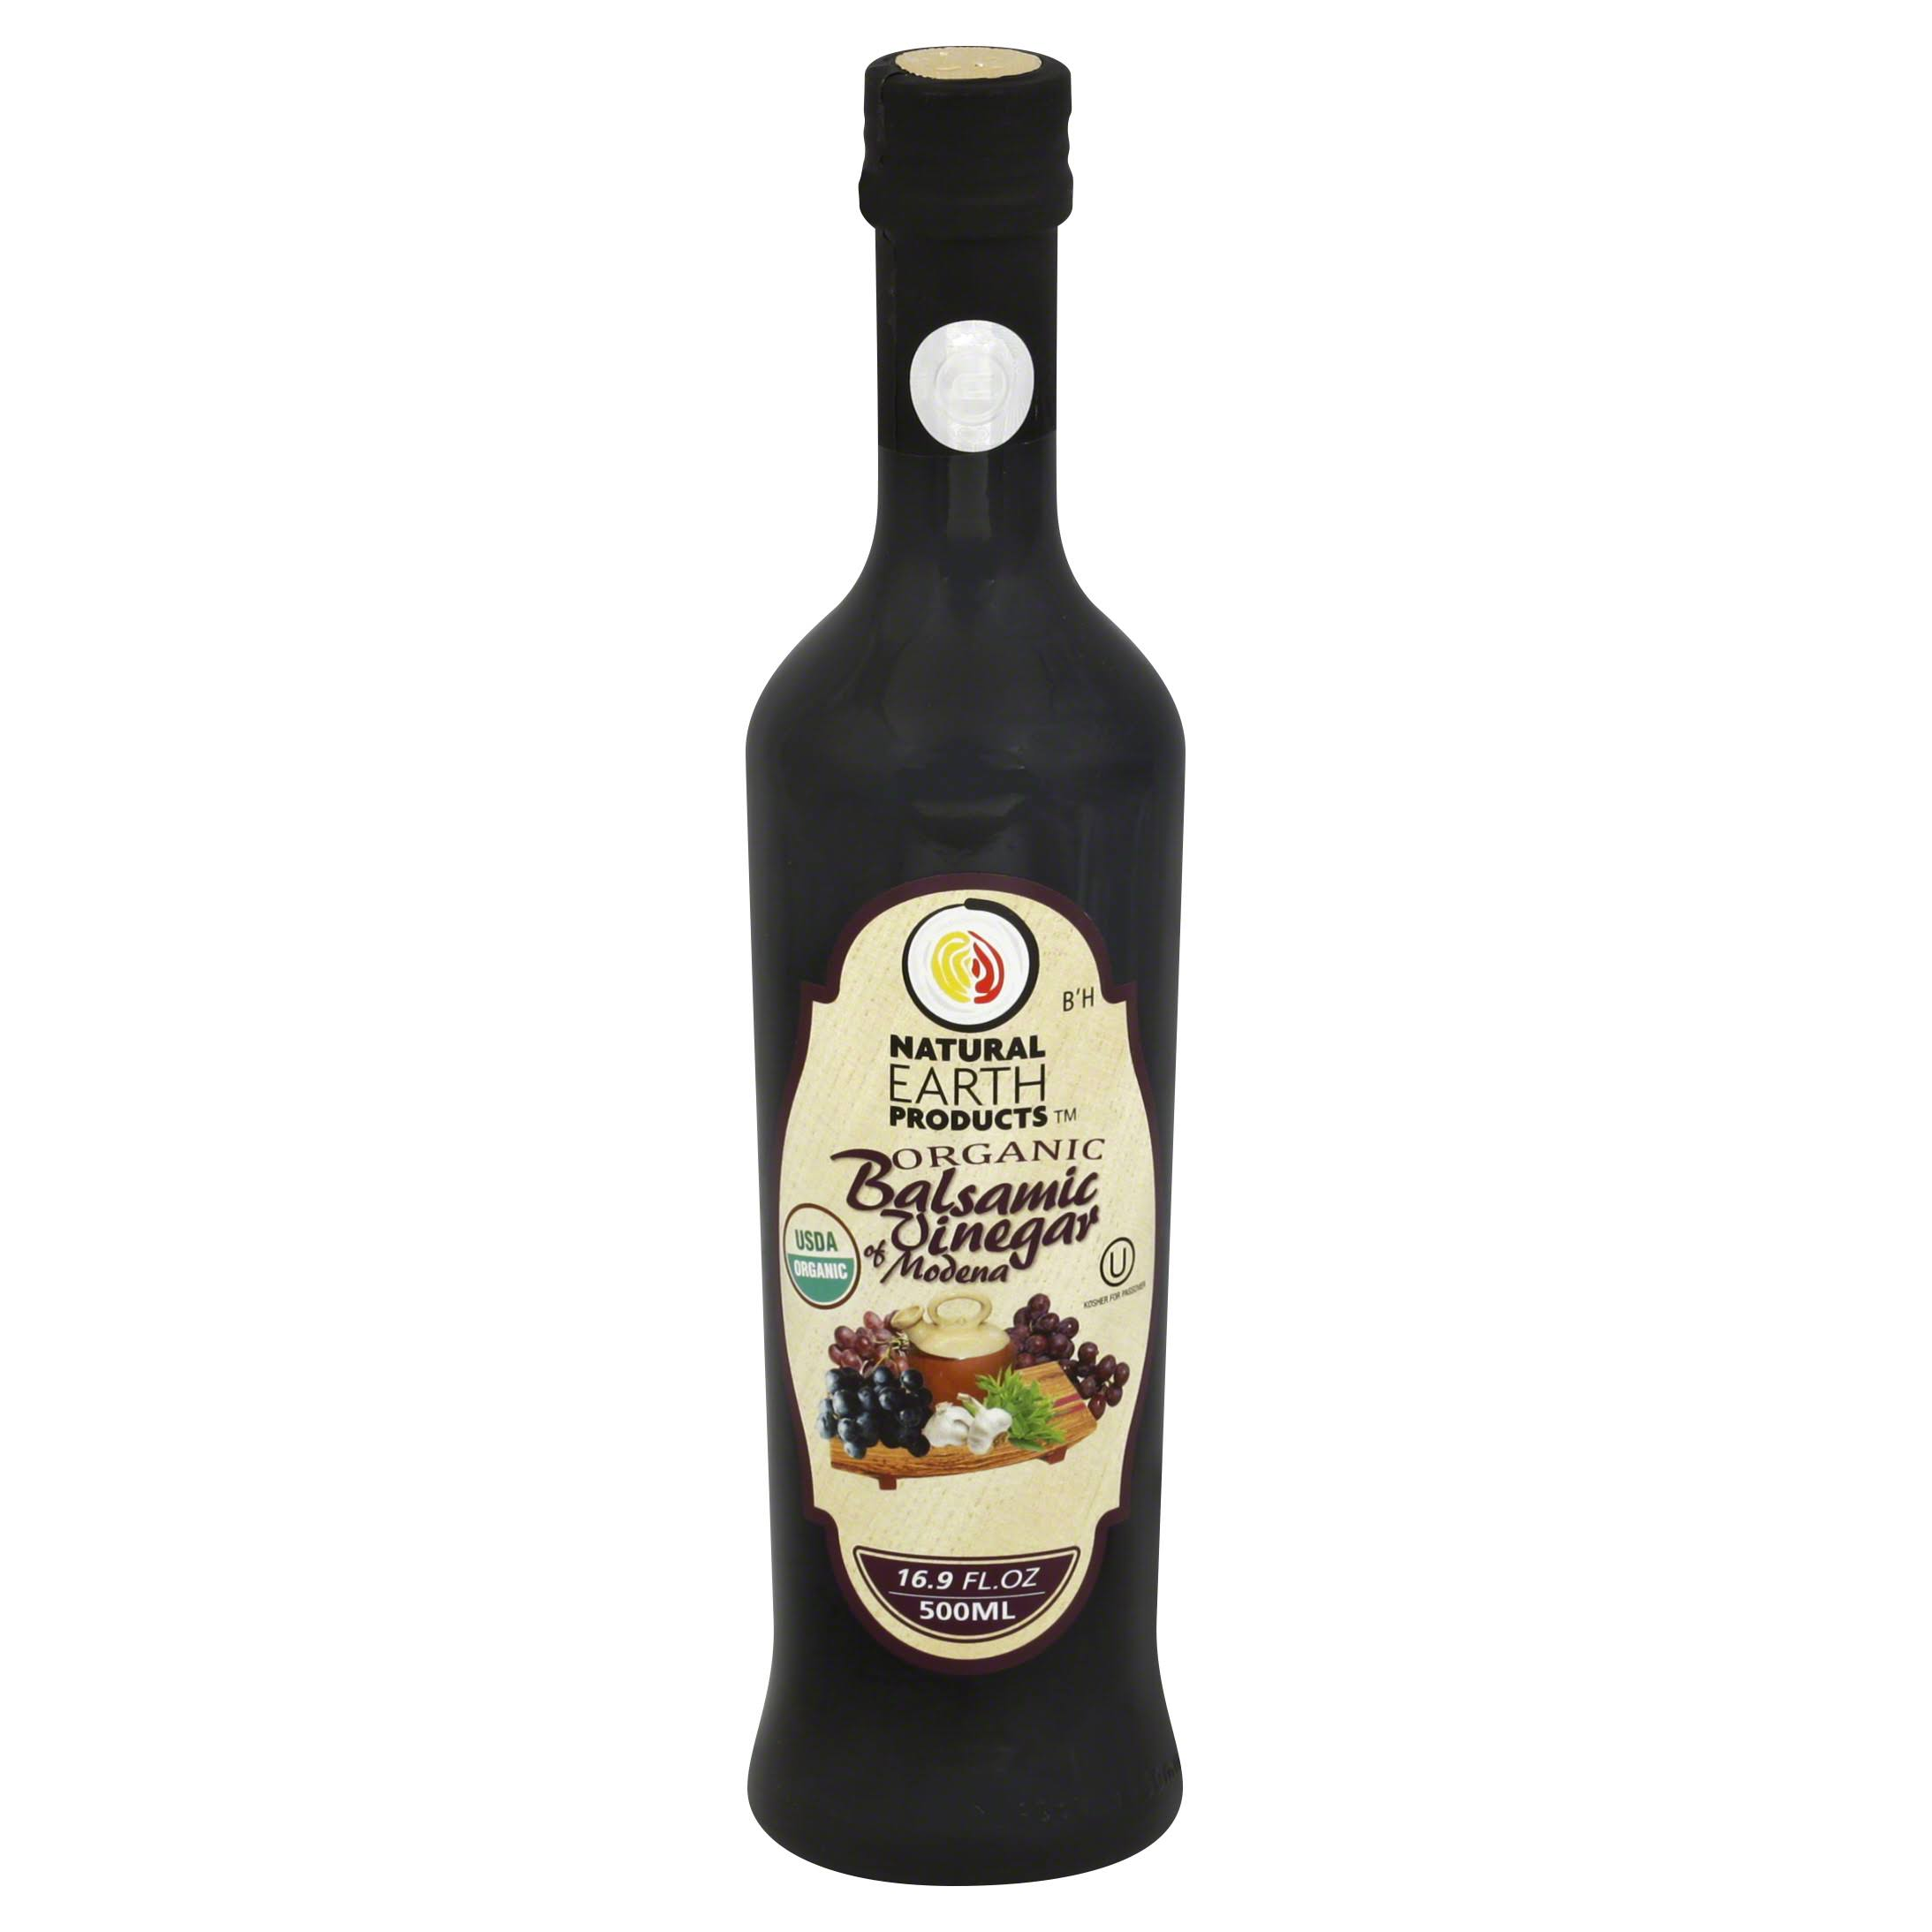 Natural Earth Organic Balsamic Vinegar of Modena - 16.9oz